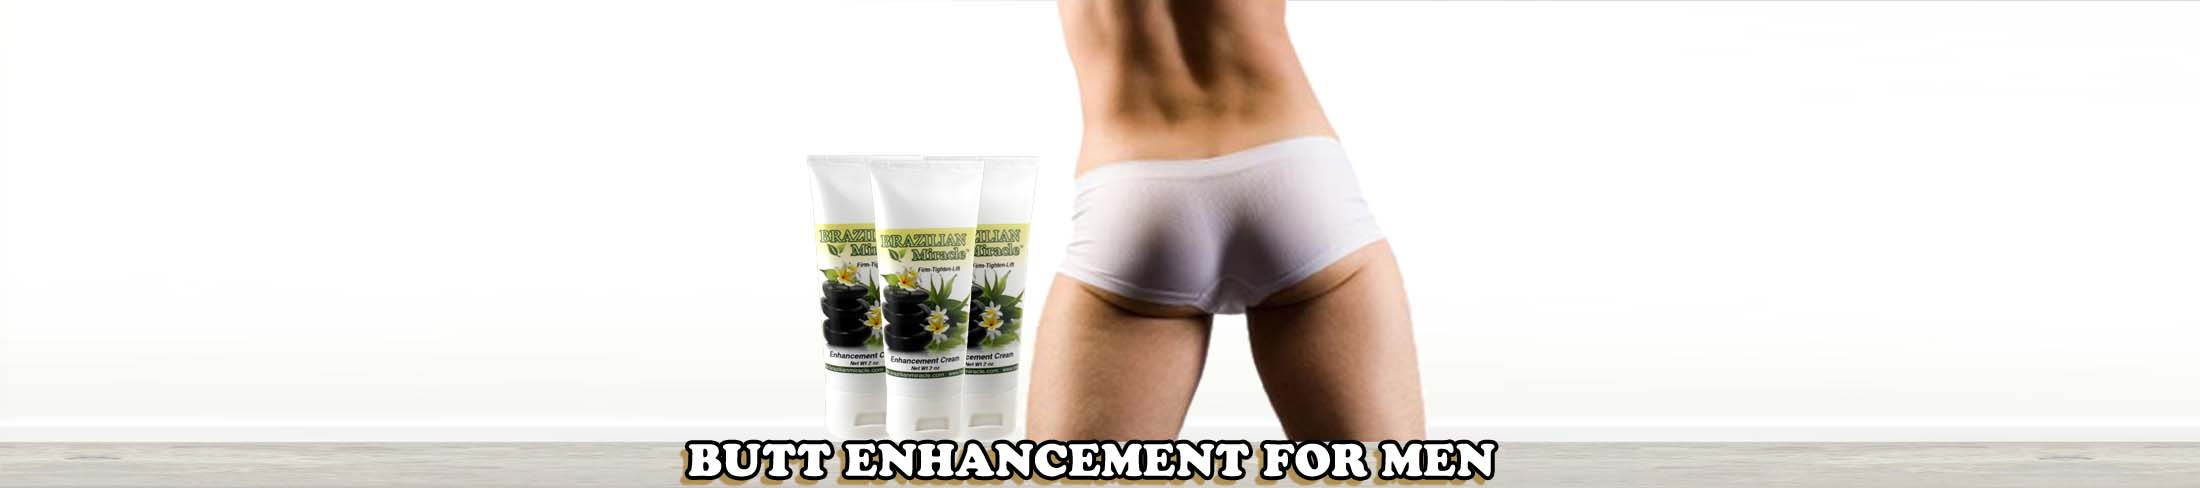 Male Butt Enhancement 80